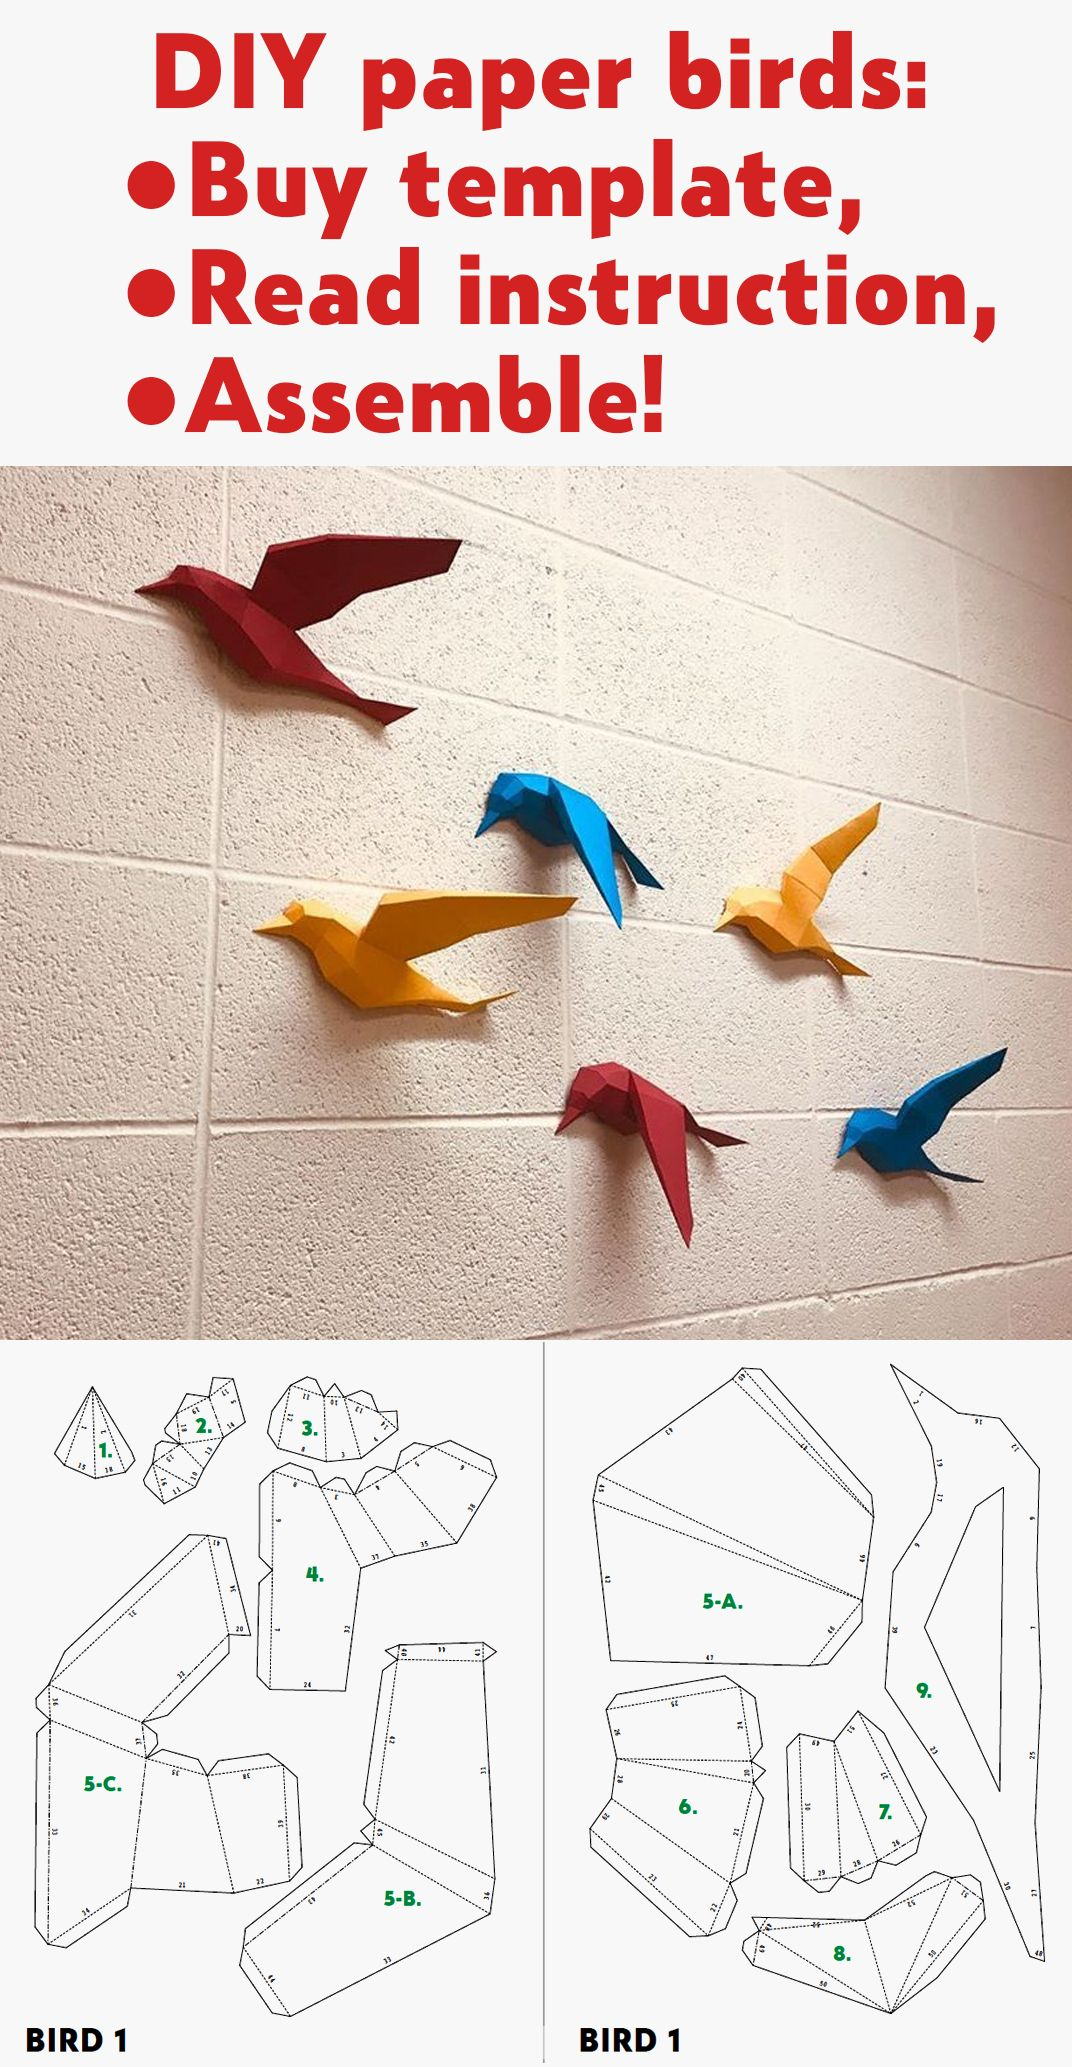 3d Papercraft Birds On Wall Diy Paper Model Sculpture Etsy Paper Crafts Paper Crafts Origami Paper Crafts Diy